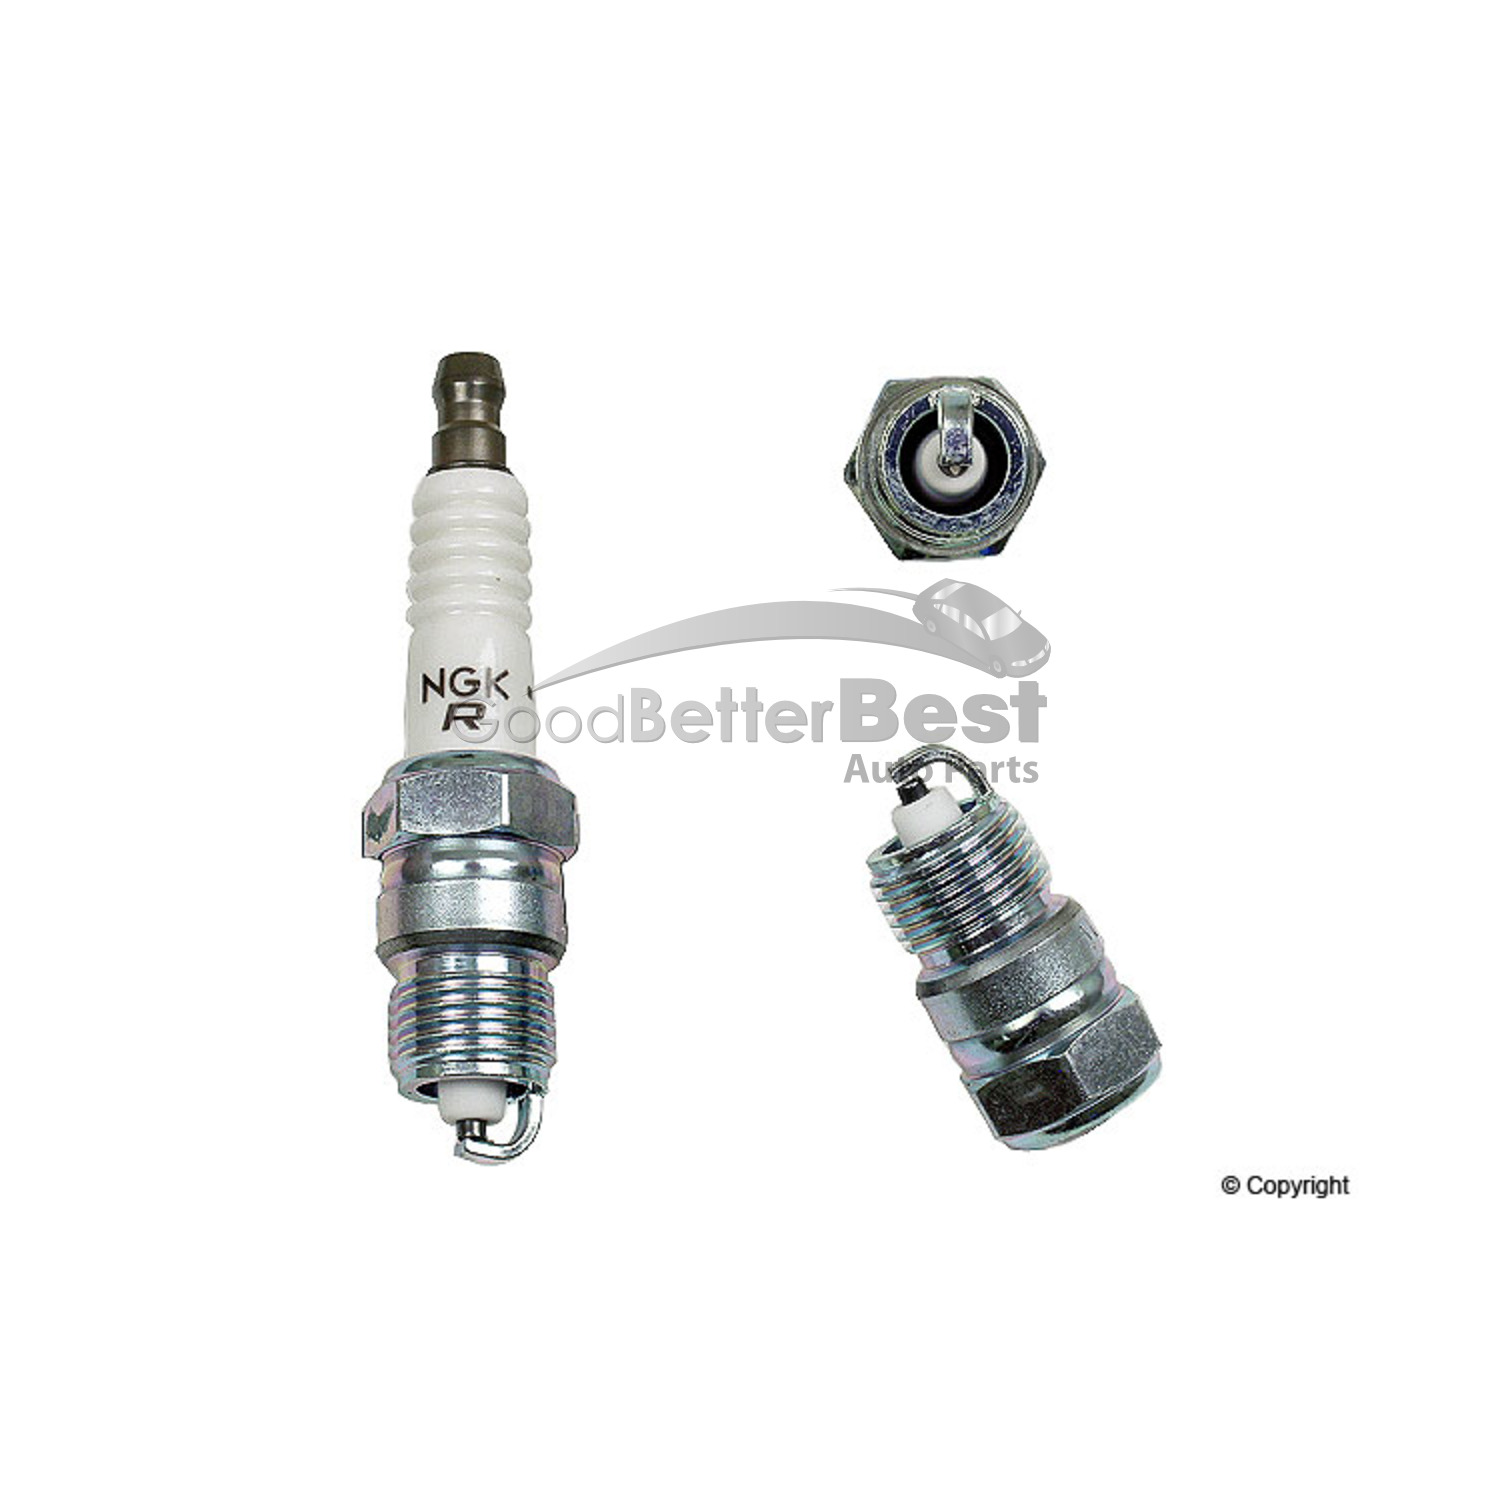 One New Ngk V Power Resistor Spark Plug Ur4 For